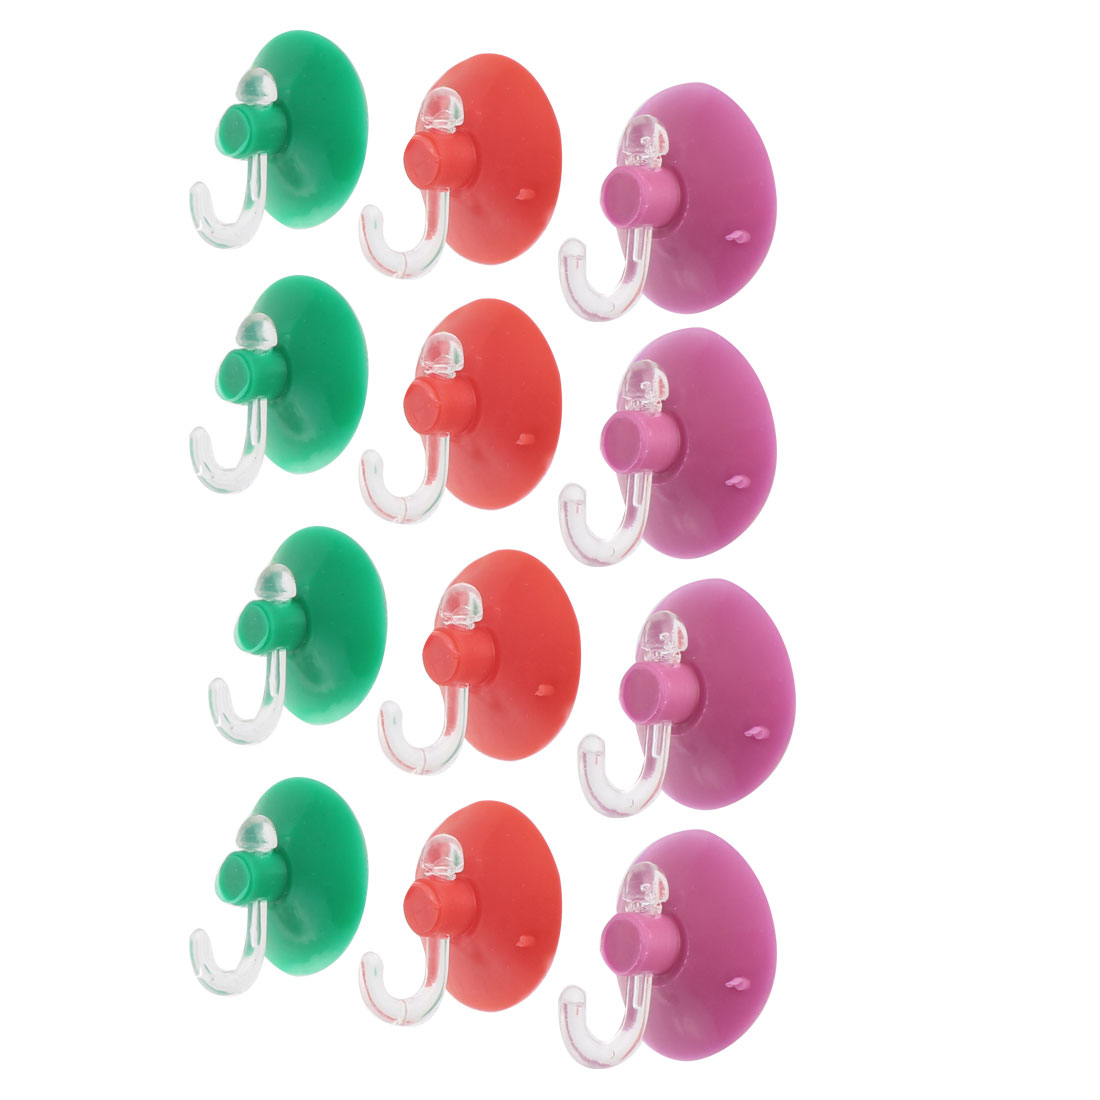 Kitchen Bathroom Plastic Suction Cup Wall Window Towel Holder Hook Hanger 12pcs